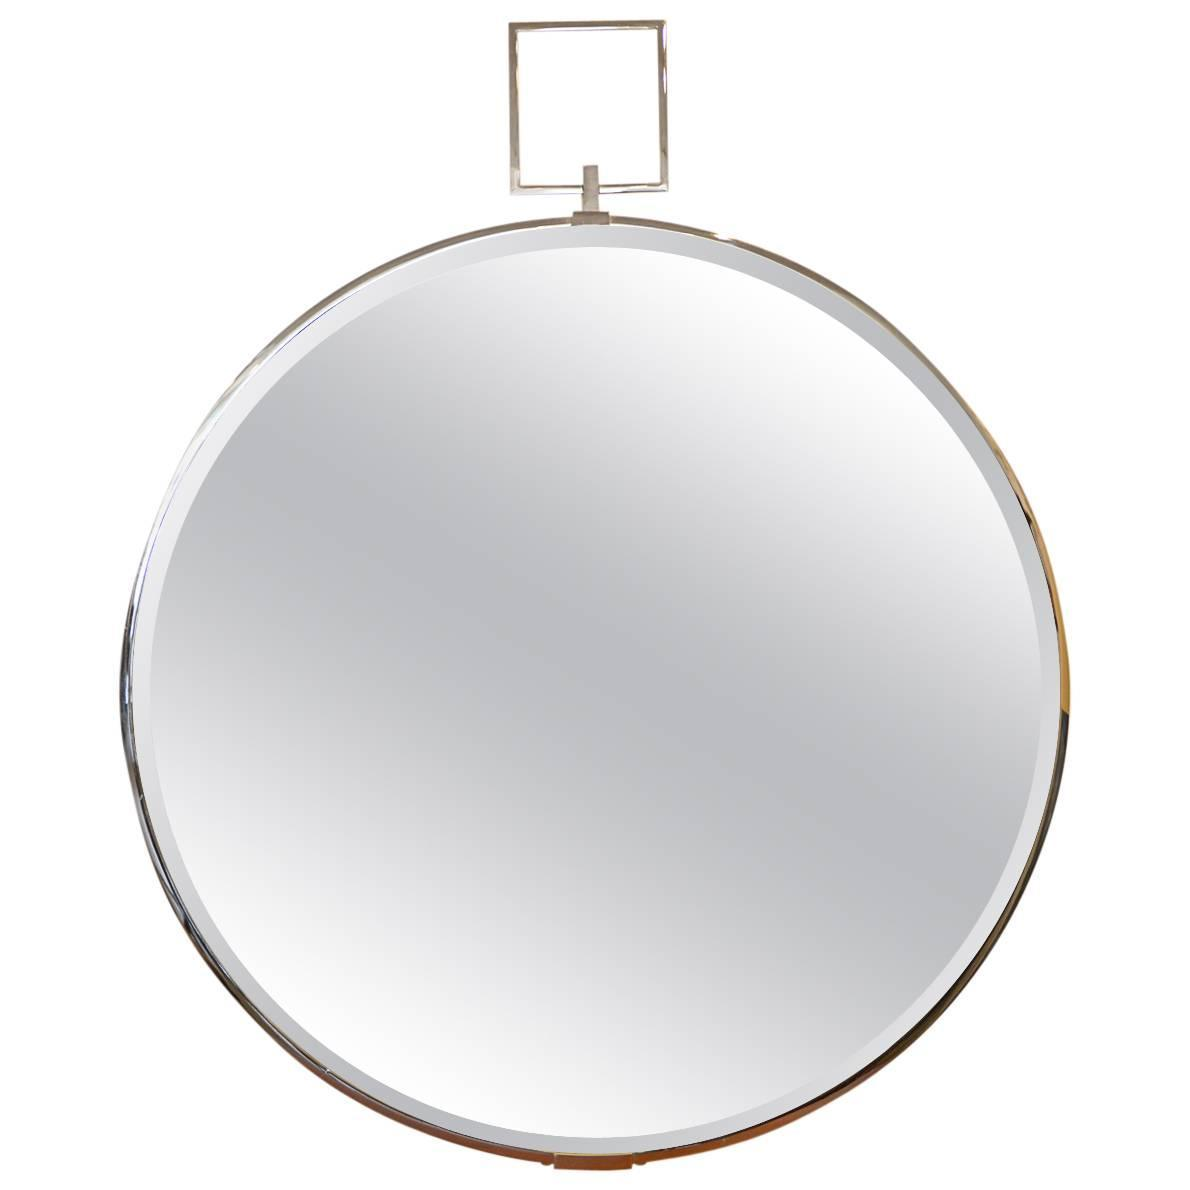 Beveled glass and chrome mirror for sale at 1stdibs for Beveled glass mirror